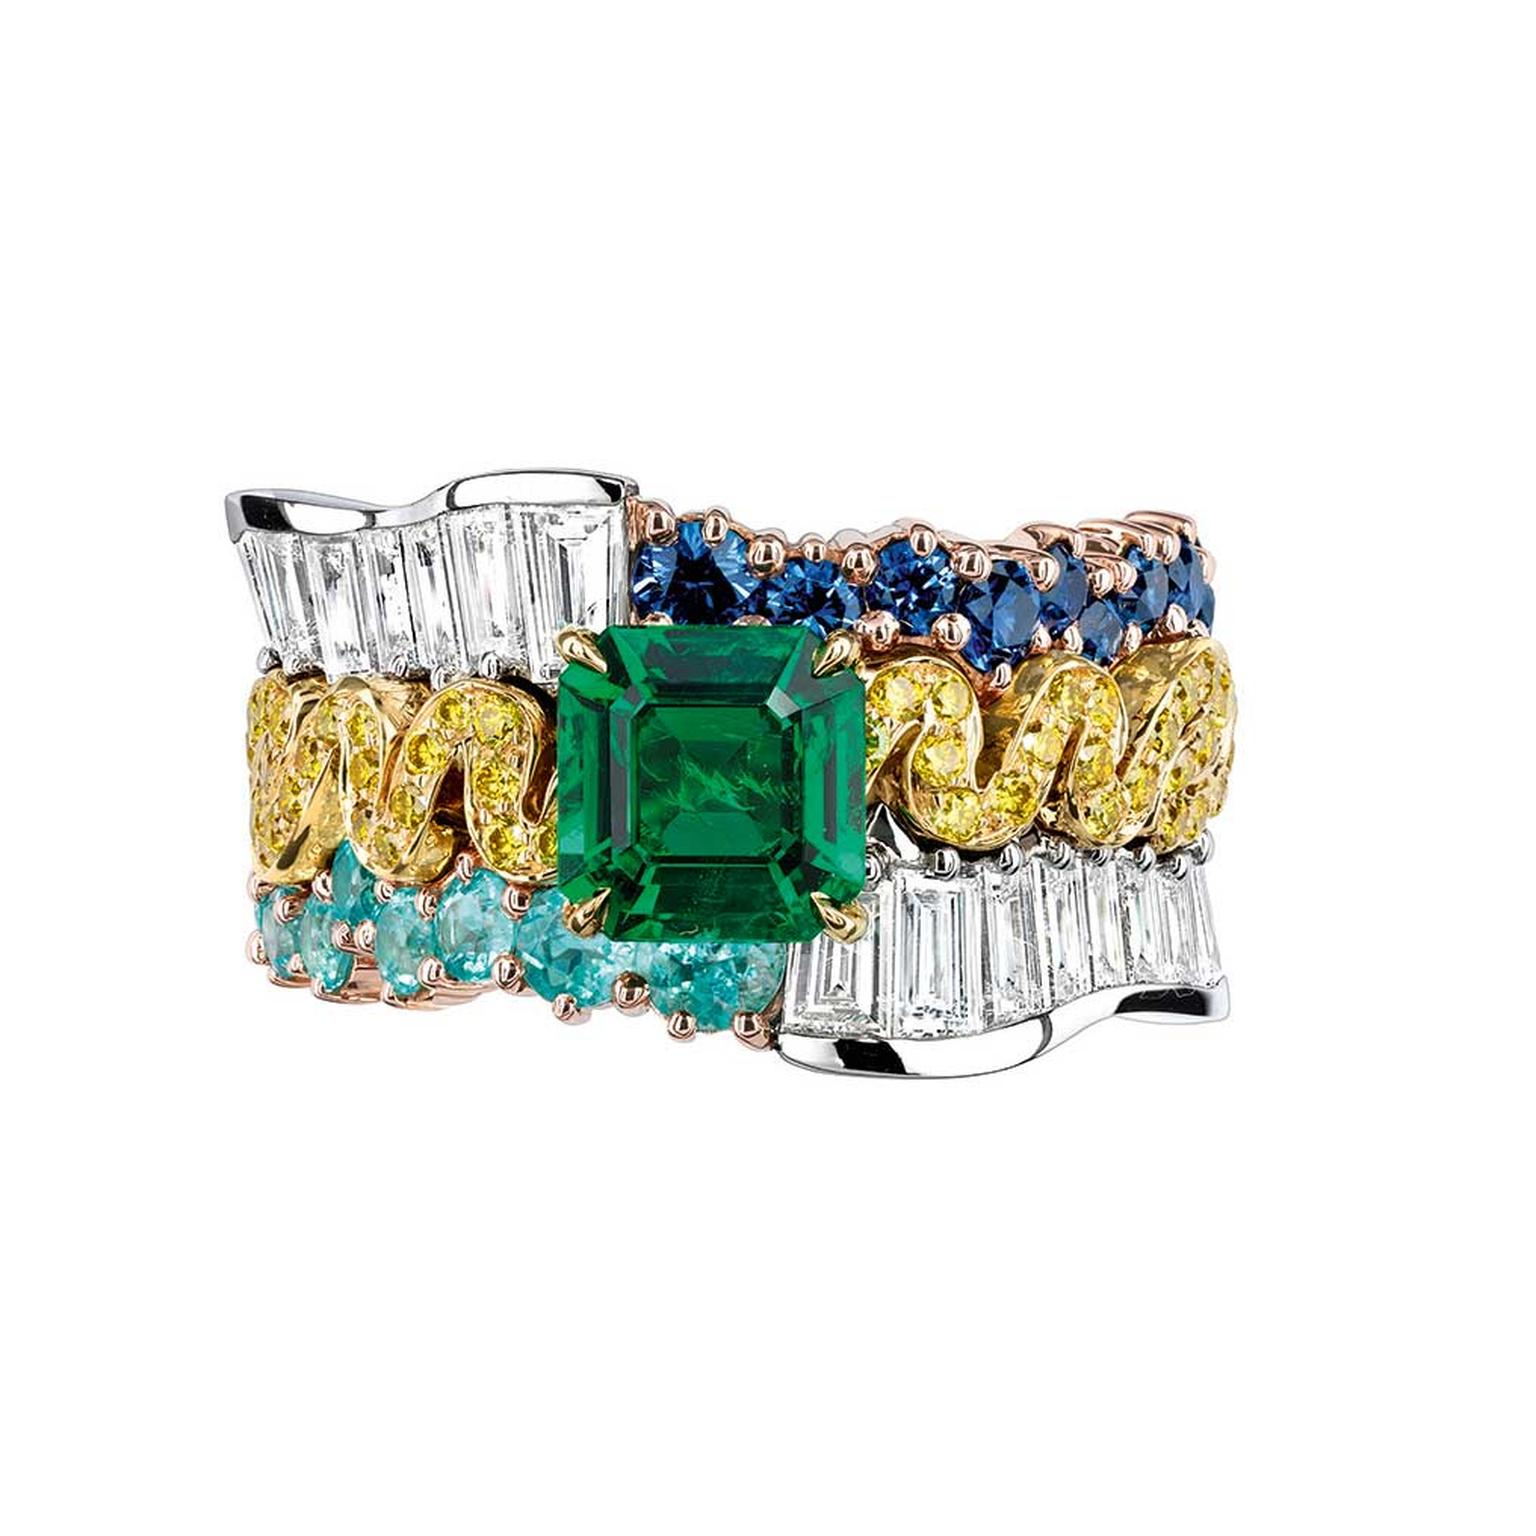 Dior Tresse Émeraude ring with emeralds and diamonds